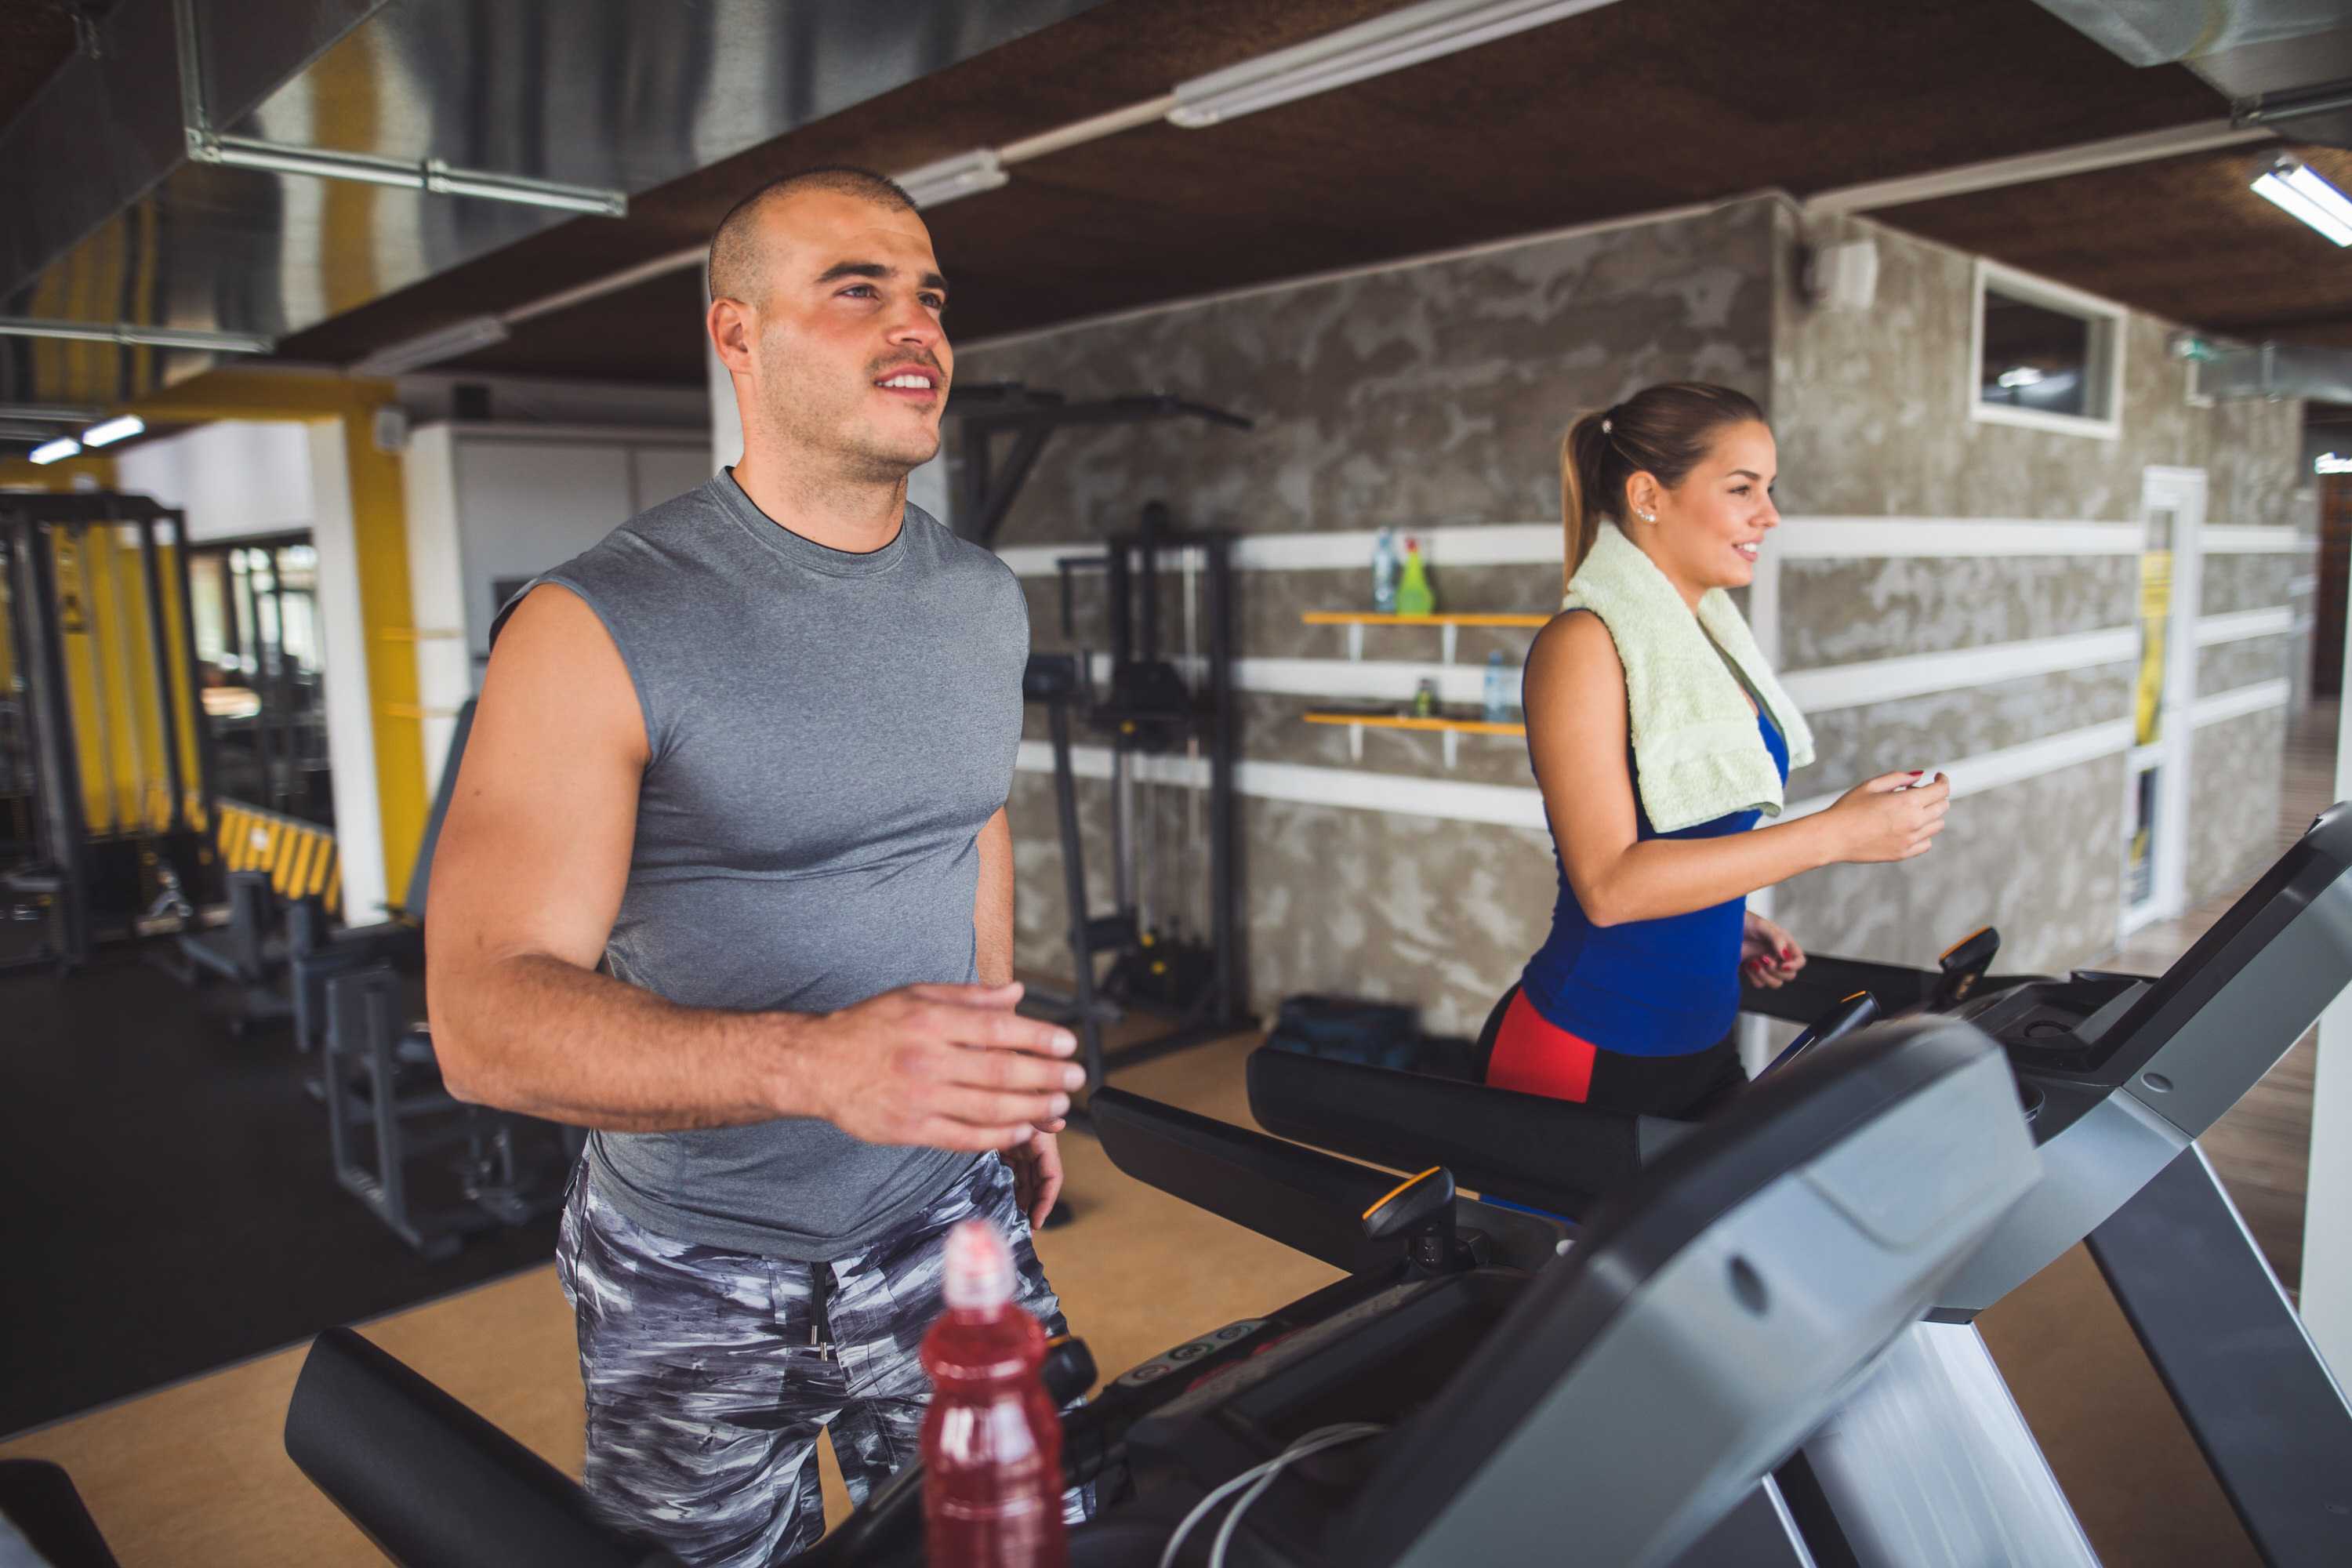 Image of two young sporty people working out on treadmills at the gym.